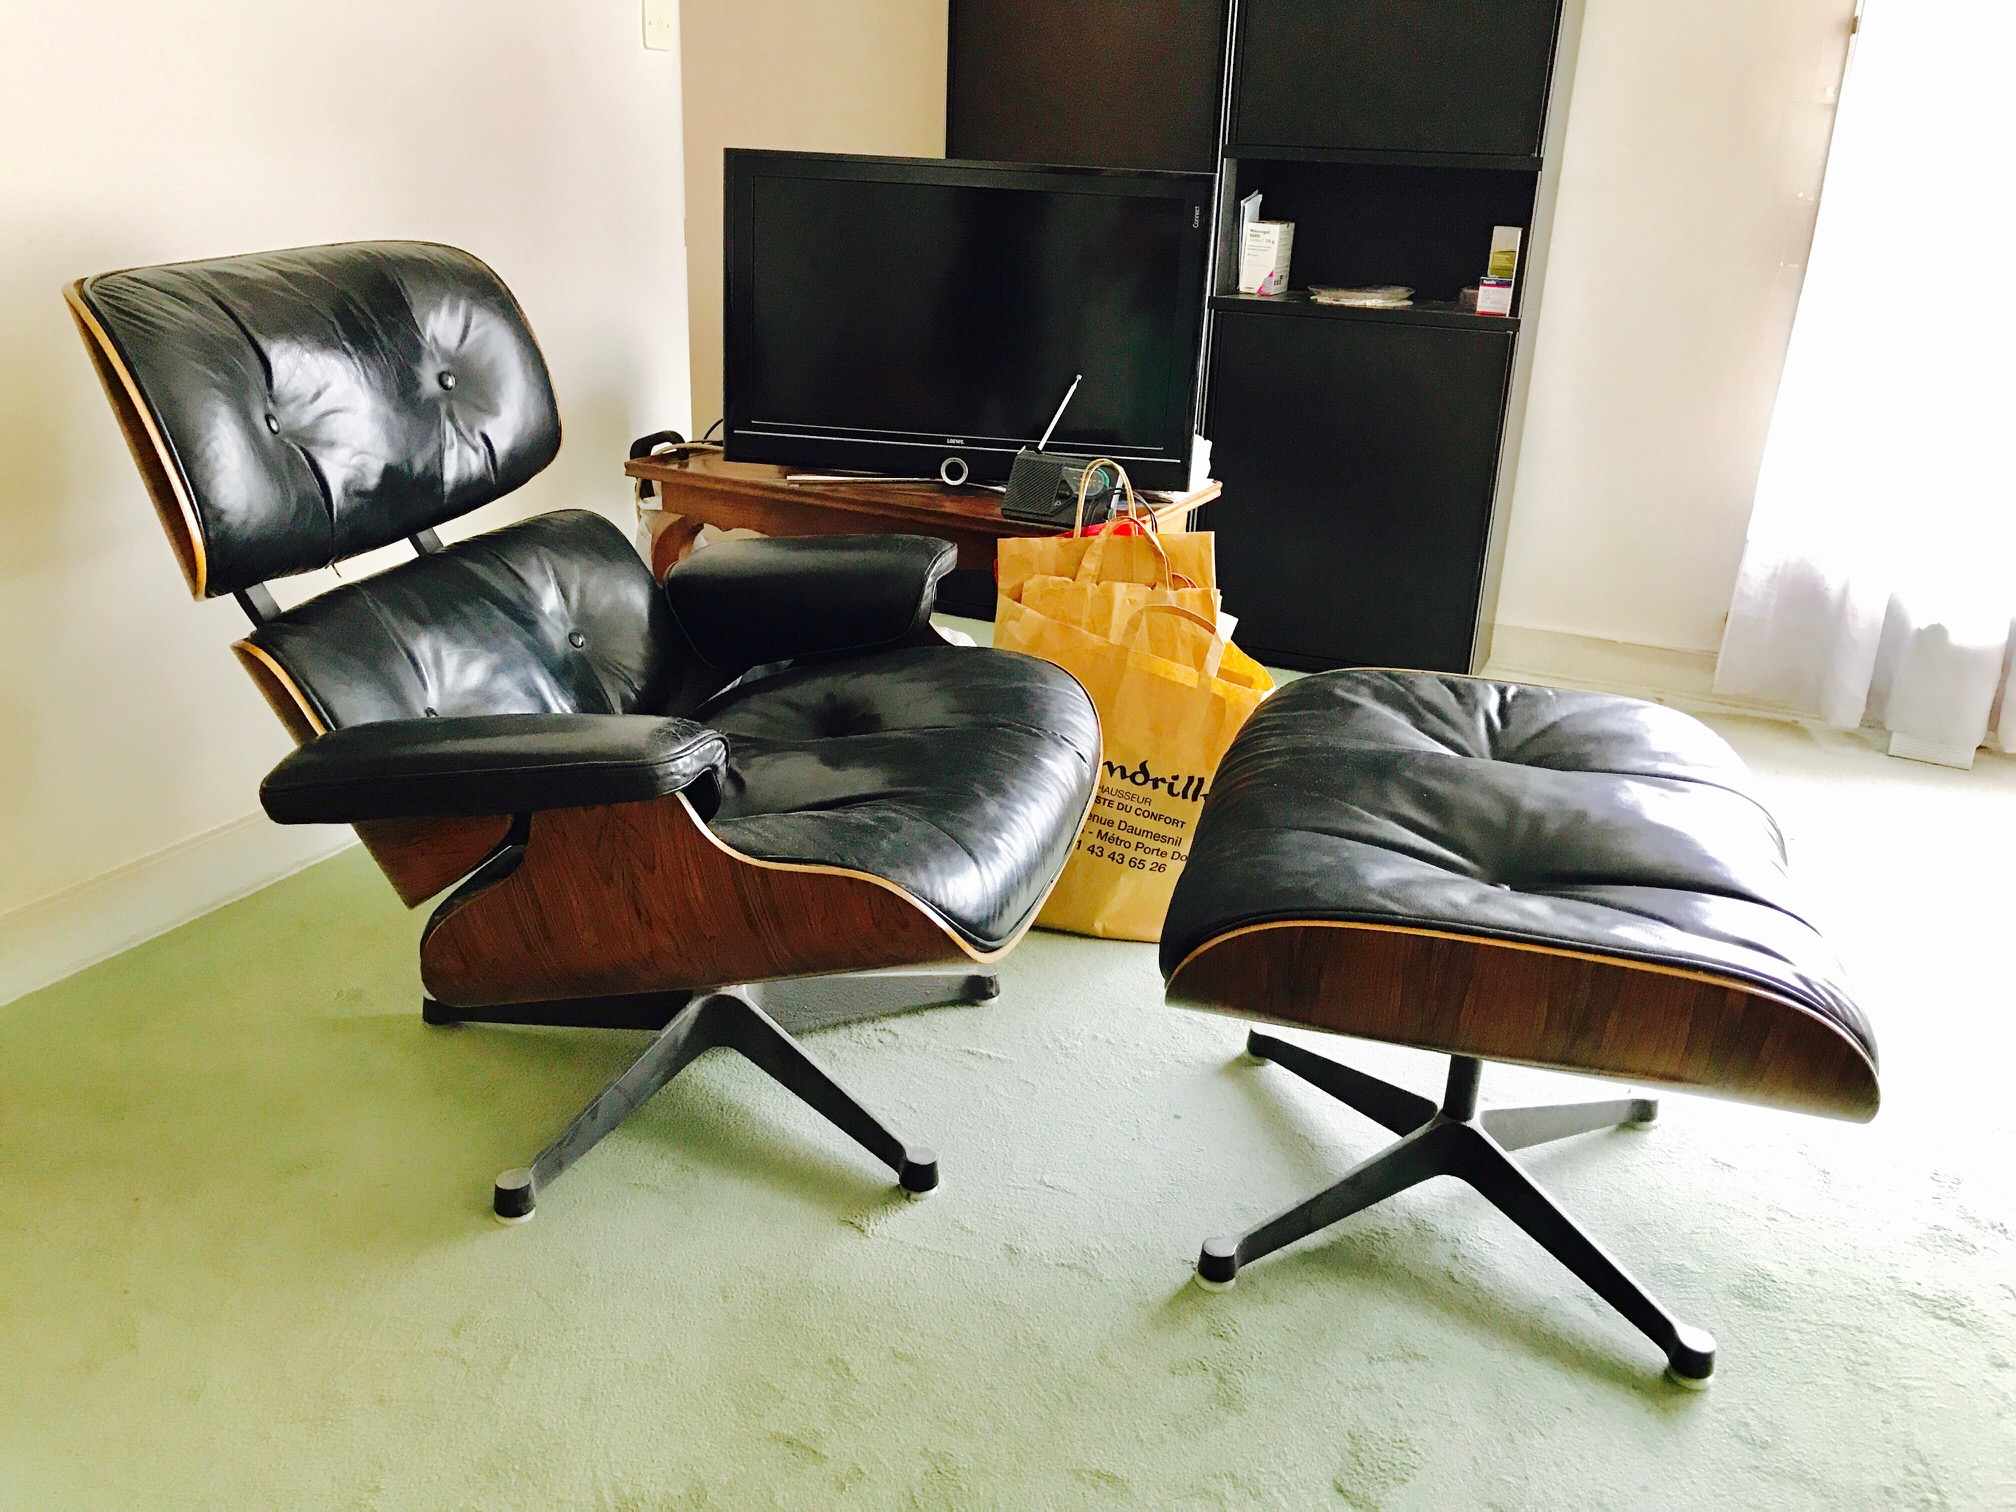 lounge chair charles eames l 39 atelier 50 boutique vintage achat et vente mobilier vintage. Black Bedroom Furniture Sets. Home Design Ideas